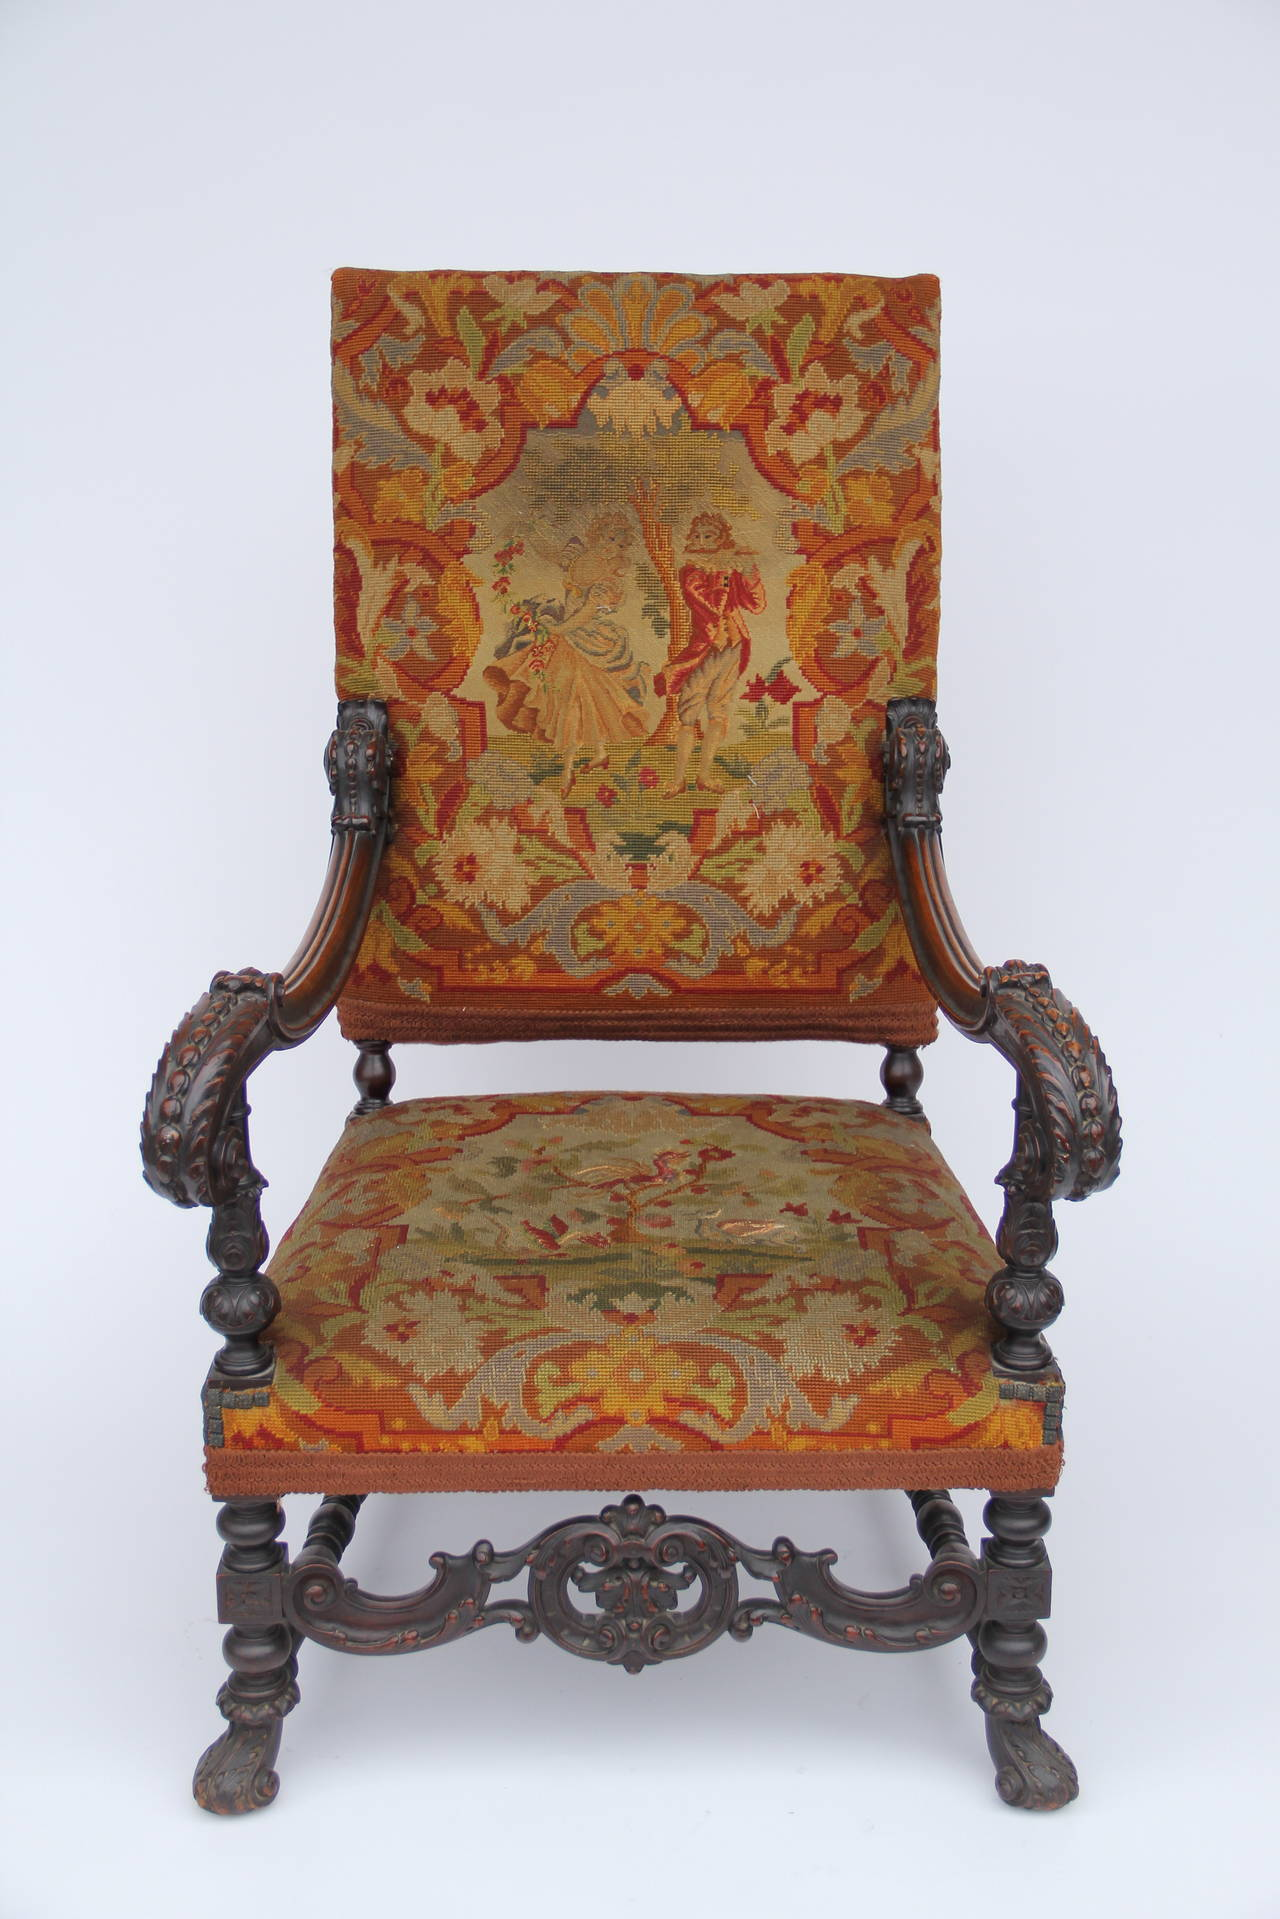 Antique louis xiv chair -